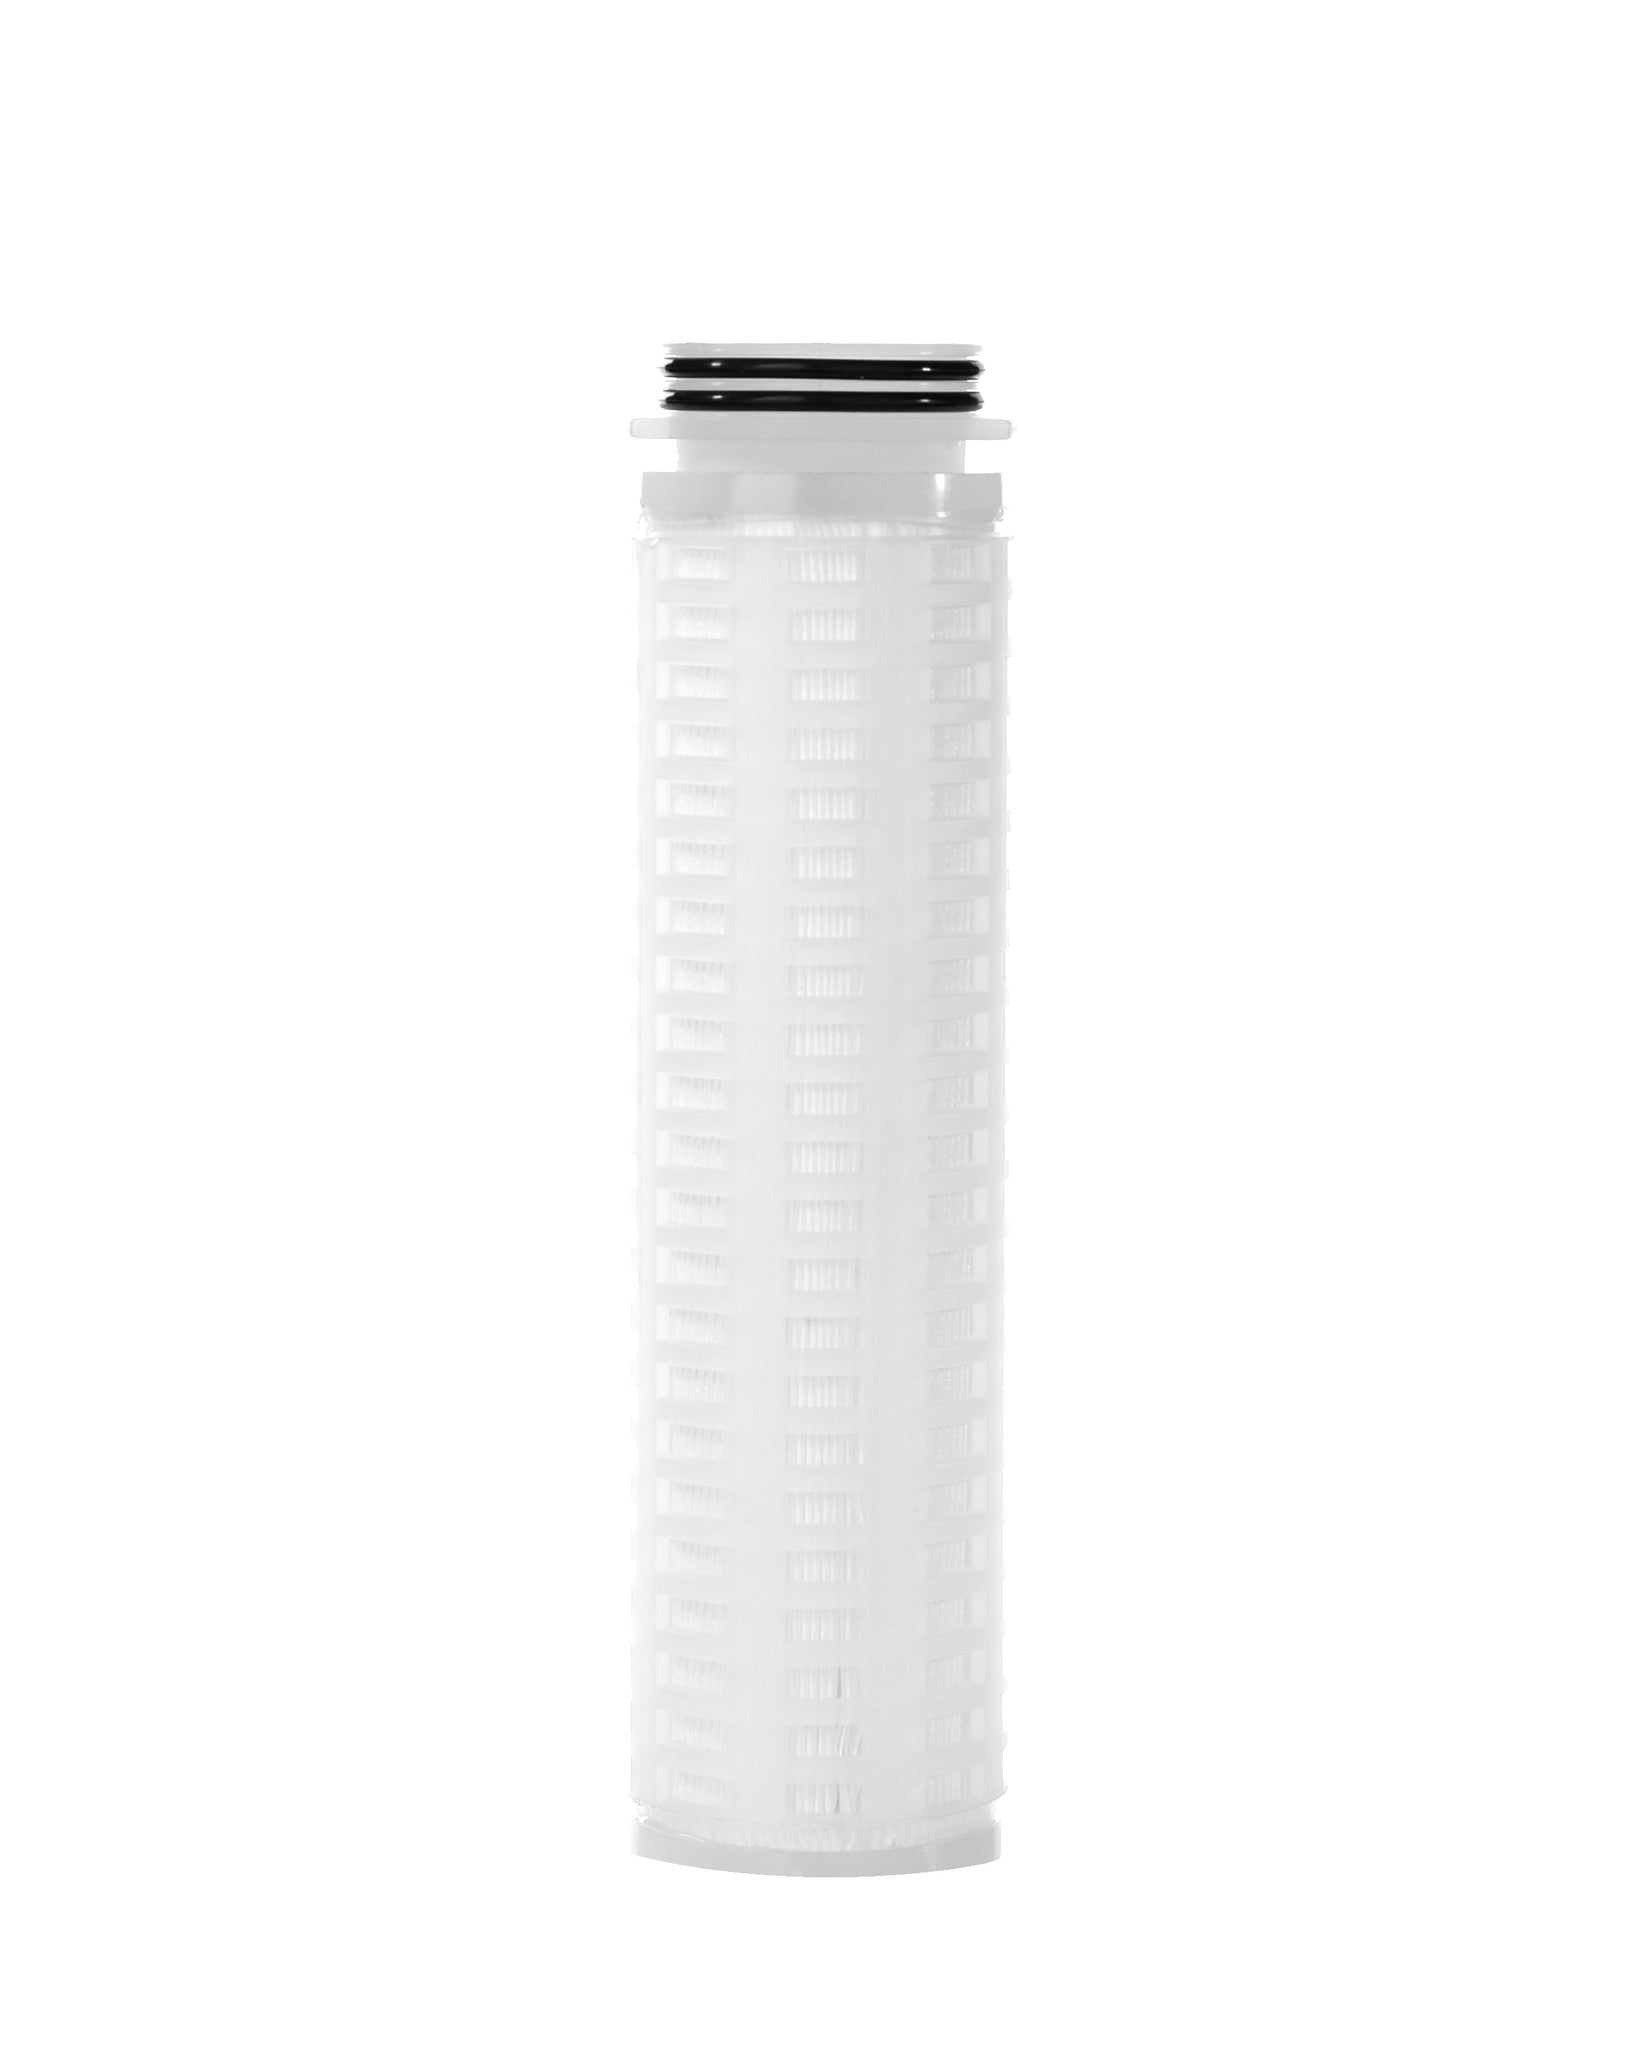 Filtersource.com Pleated Polypropylene Filter Cartridge Pleated Filter Cartridge - Filtersource.com - 5